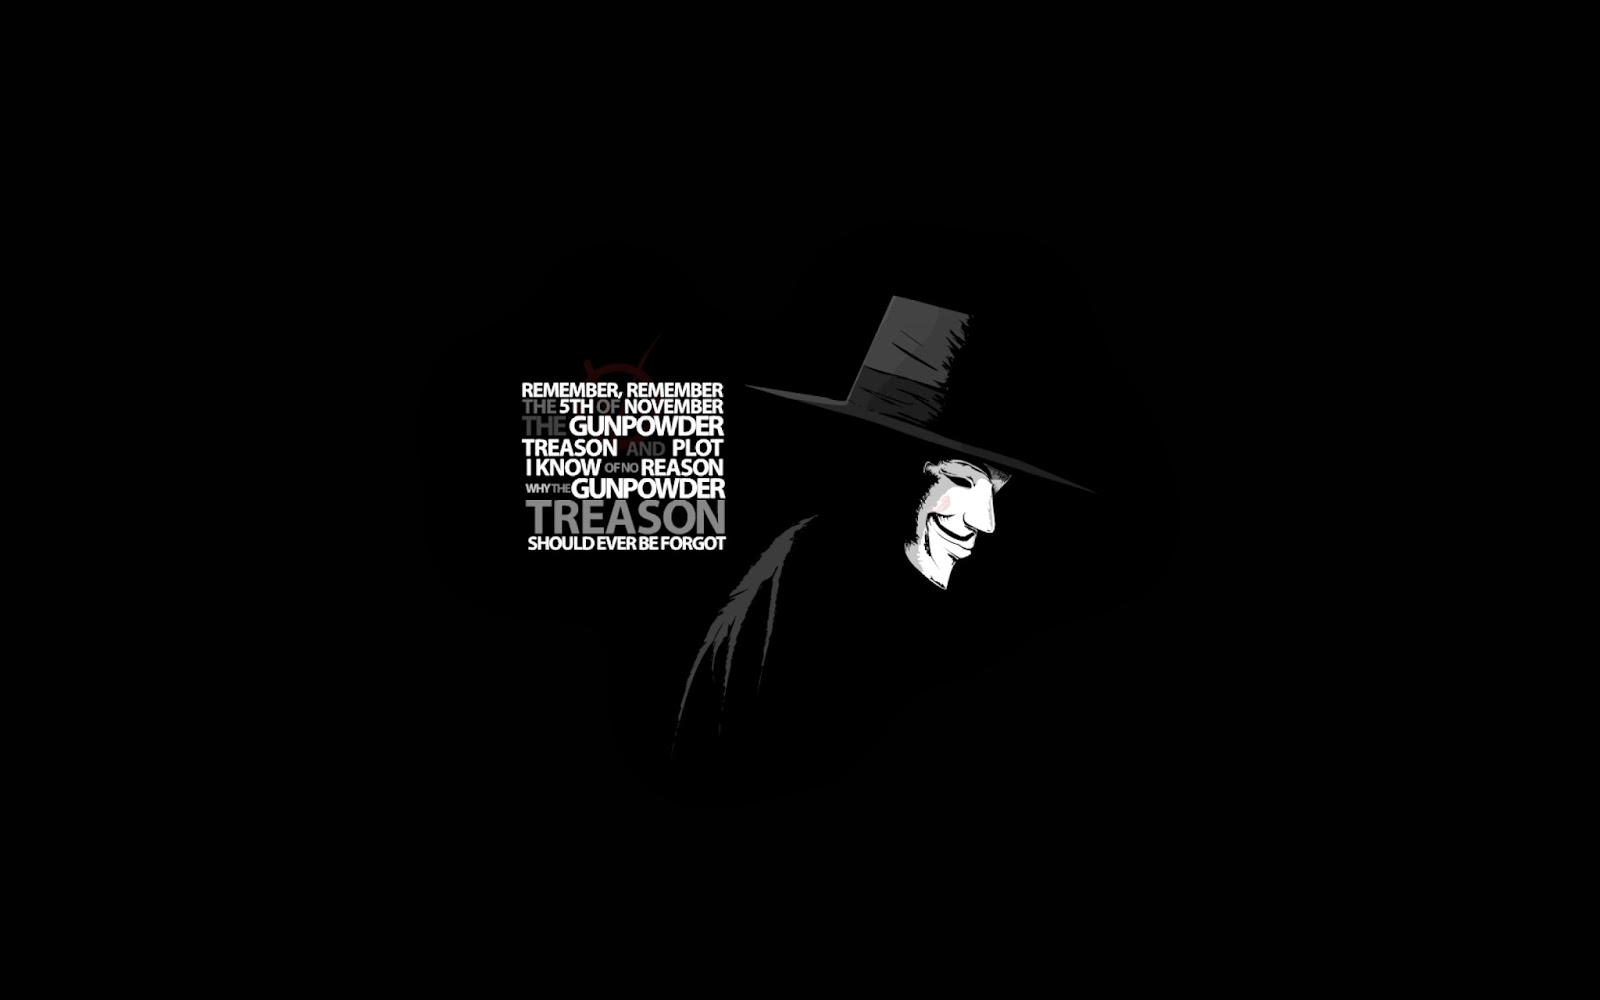 v for vendetta replikleri